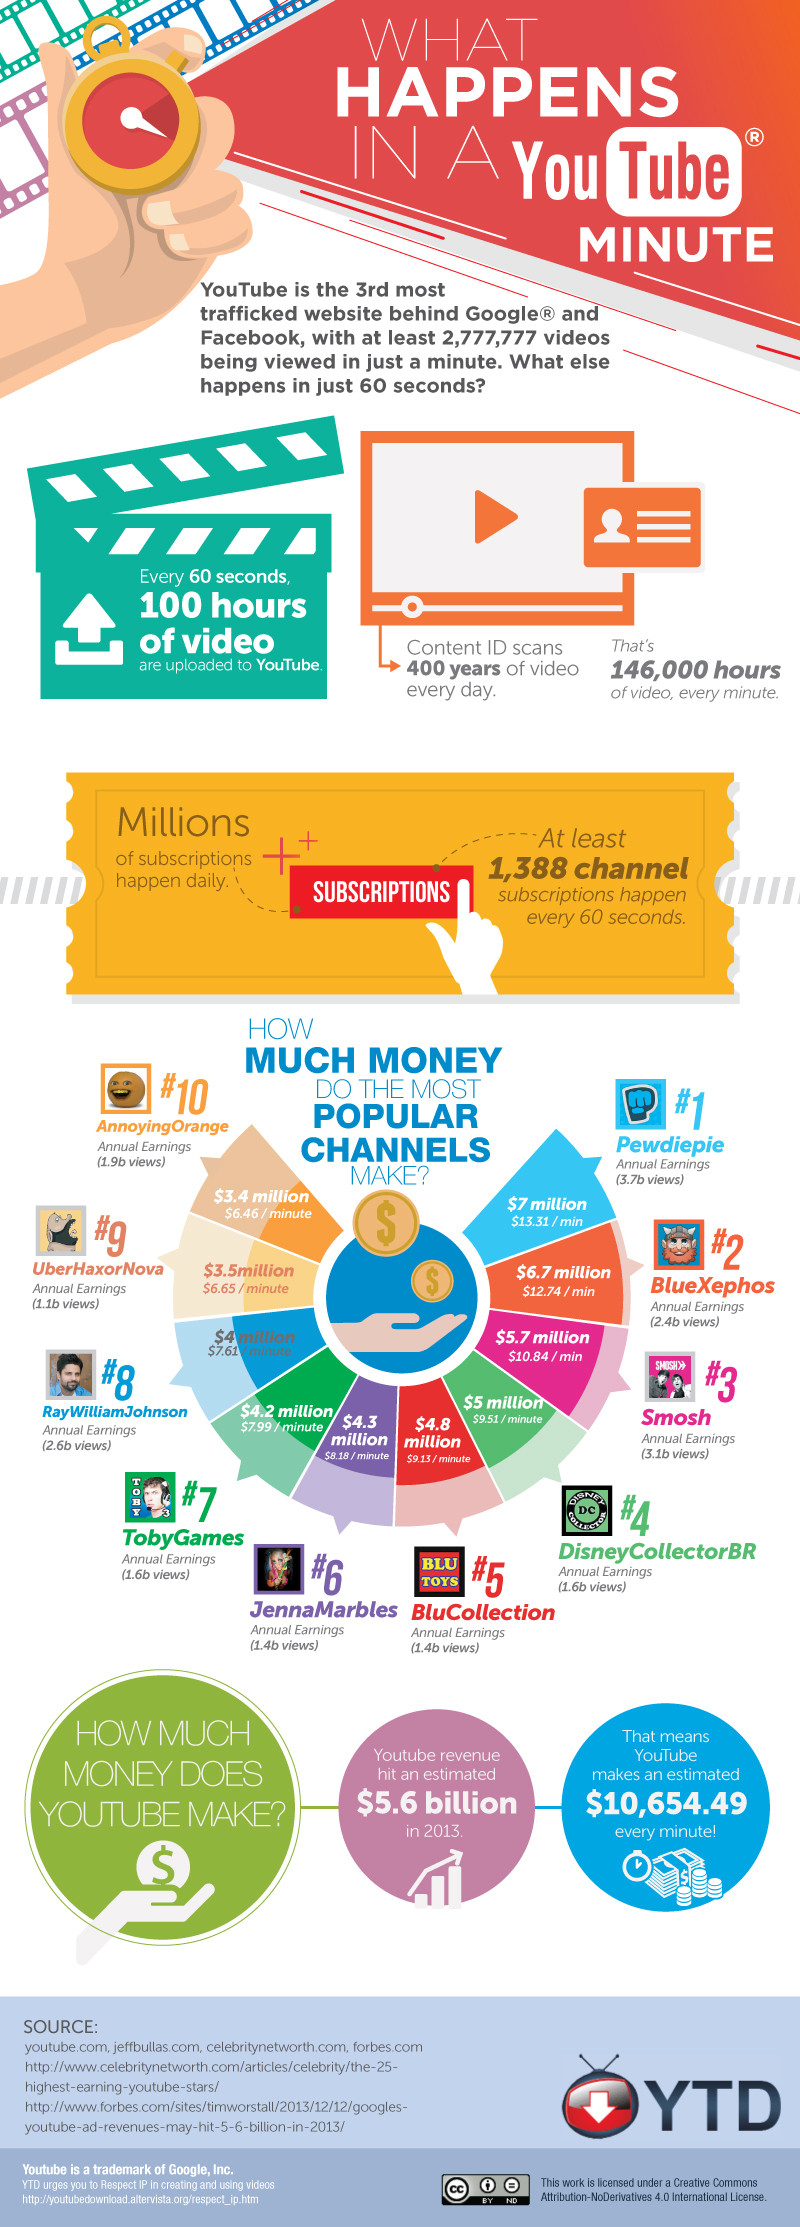 What Happens In A YouTube Minute (Infographic